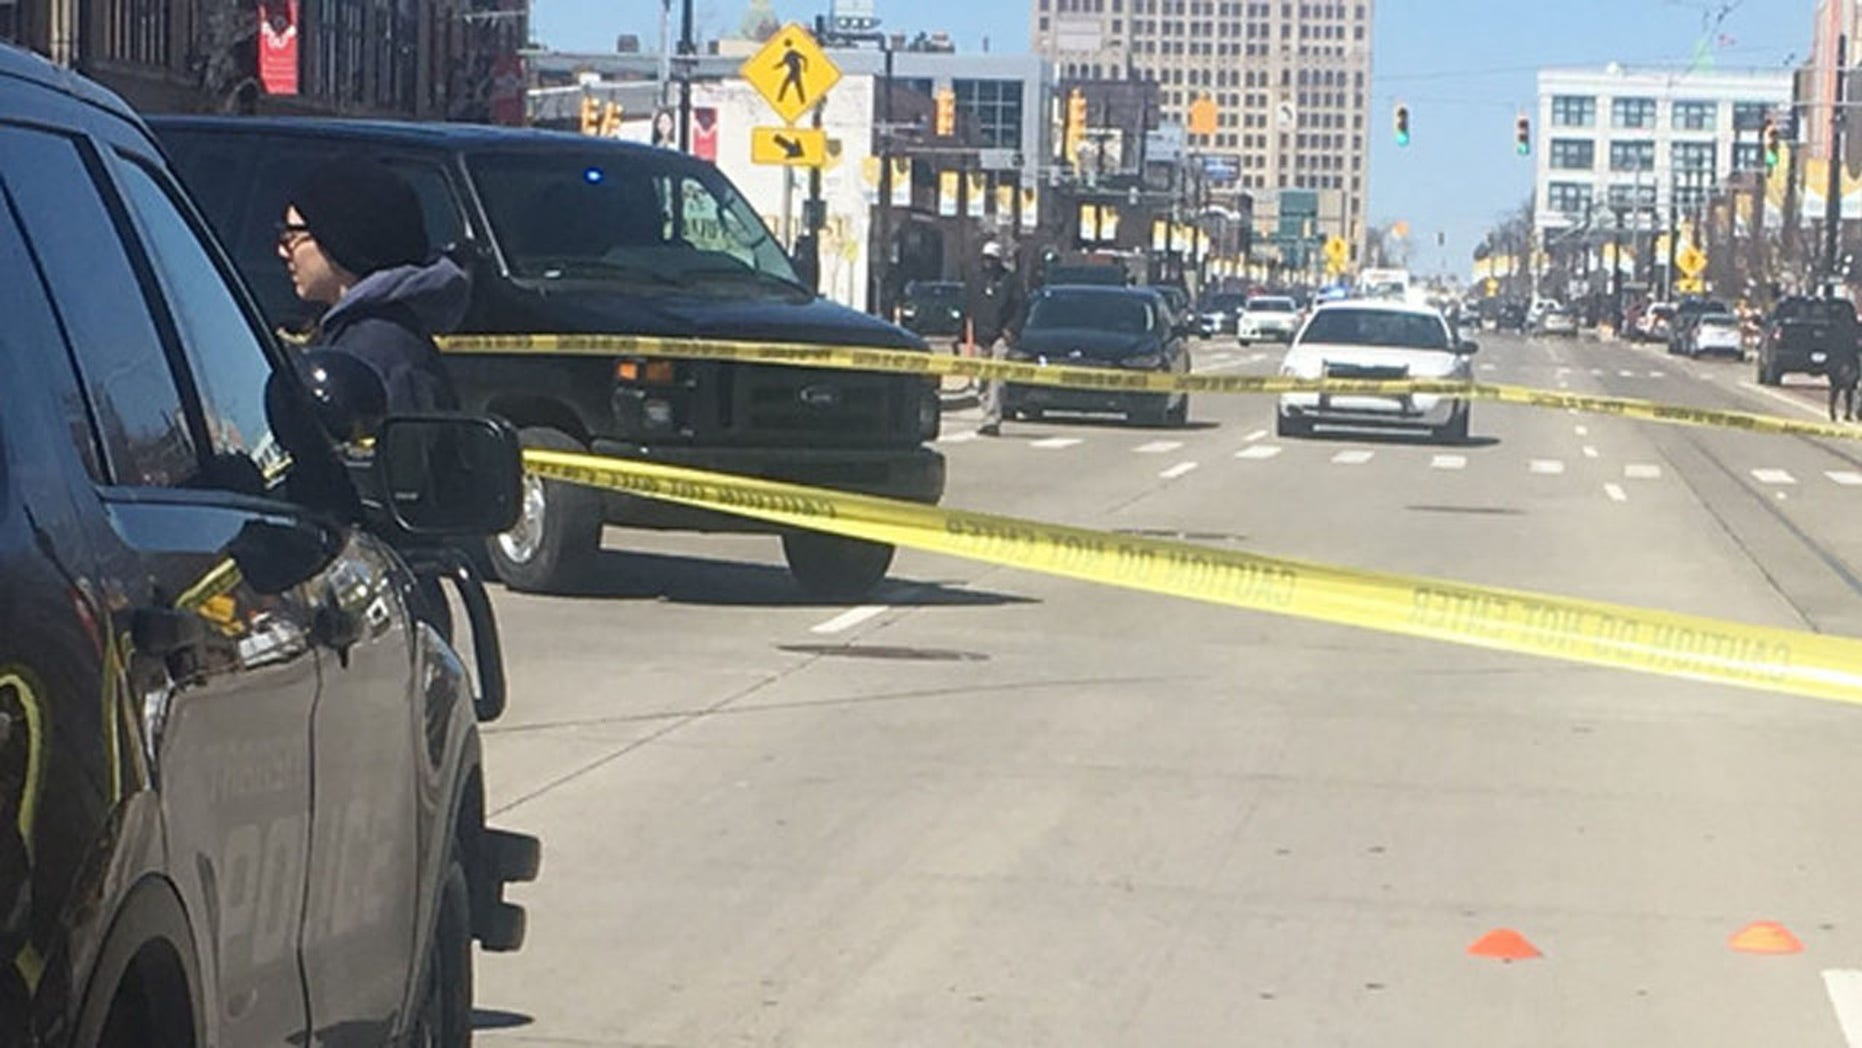 A man was shot in the face and shoulder after a argument on a bus in Detroit over some gym shoes, according to police.